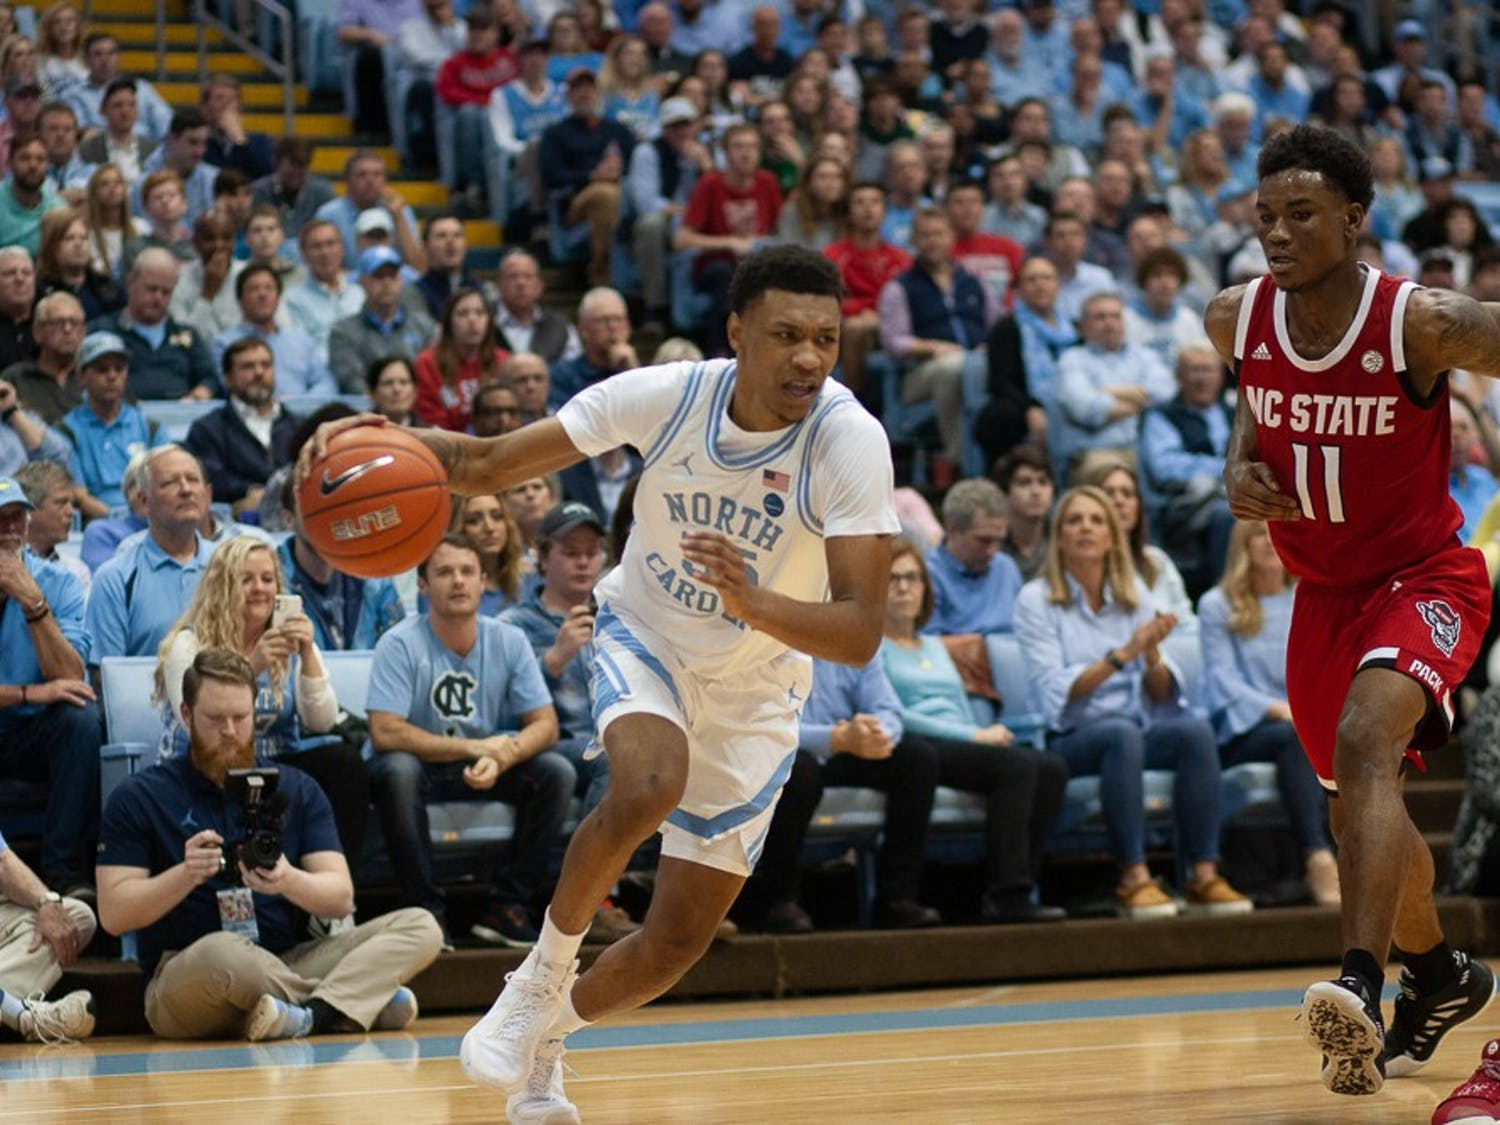 UNC graduate guard Christian Keeling (55) drives the ball up the court against N.C. State in the Smith Center on Tuesday, Feb. 25, 2020.